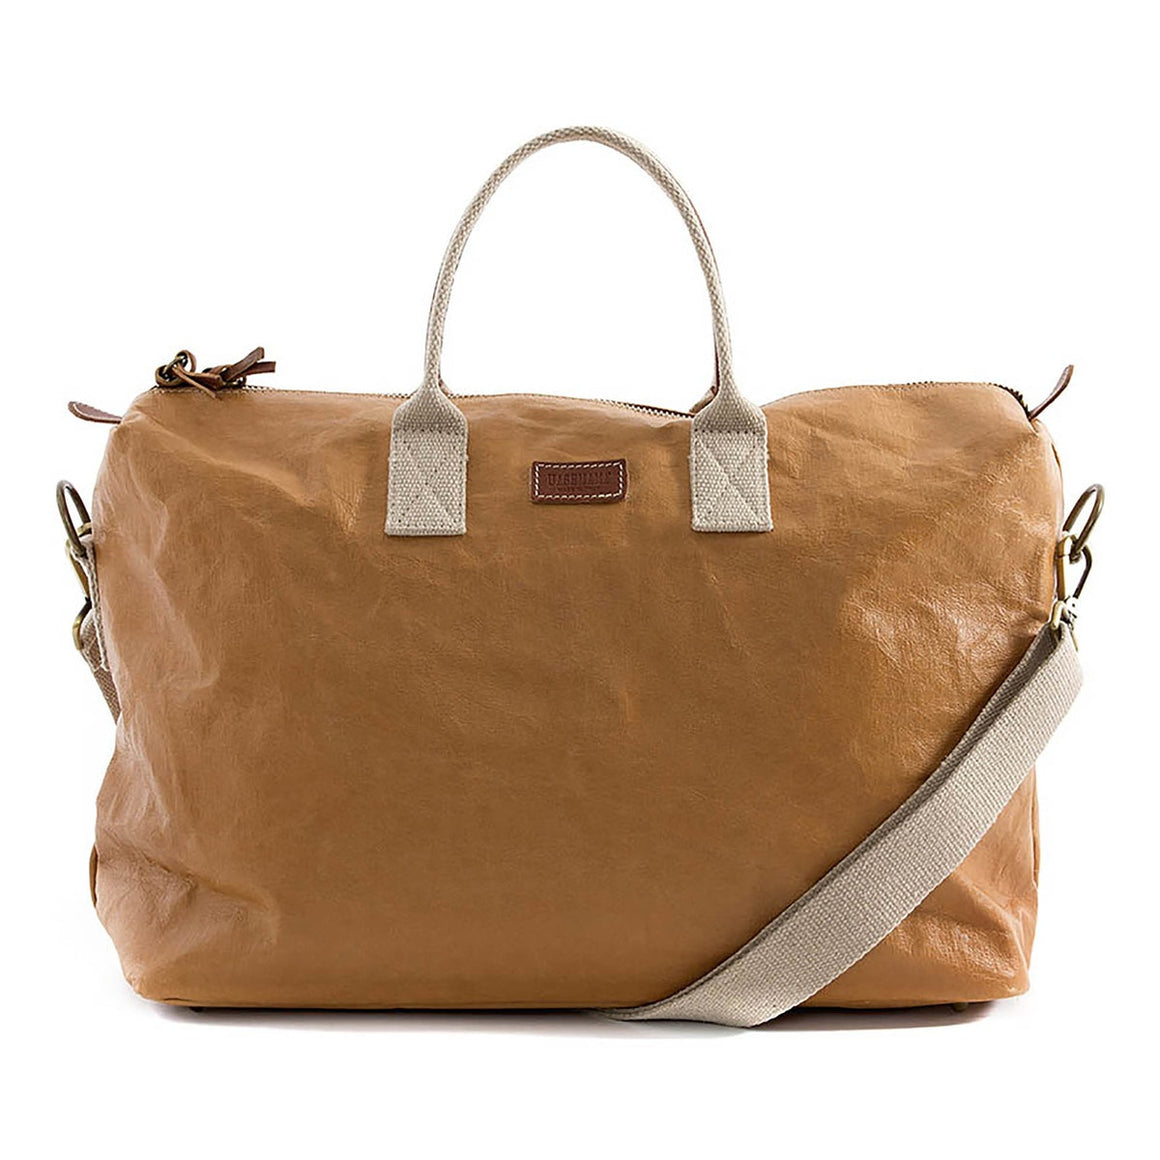 Uashmama Large Roma Bag